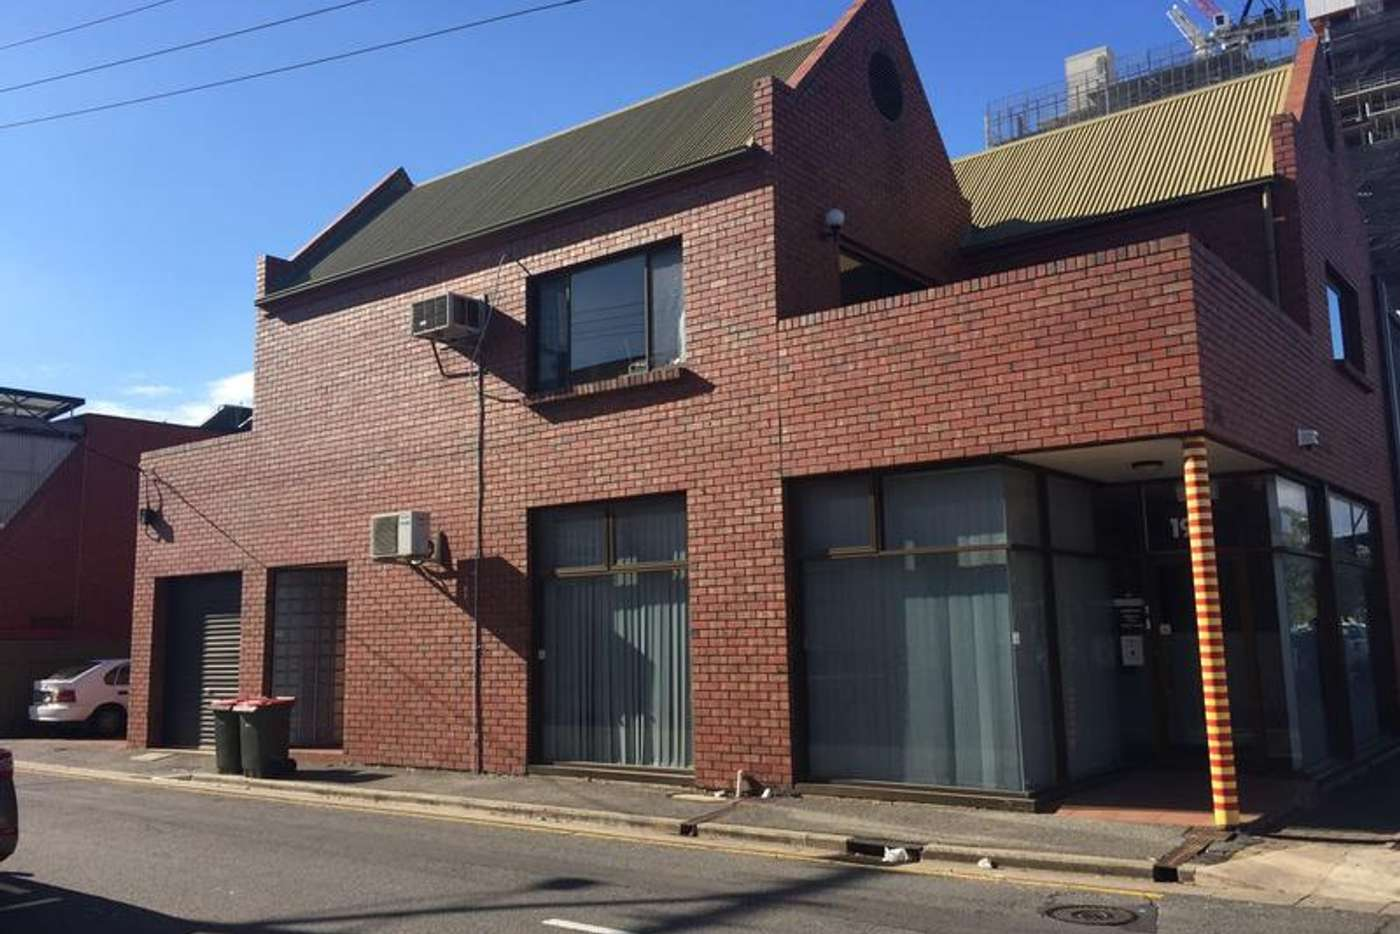 Main view of Homely house listing, 38 Selby Street, Adelaide SA 5000